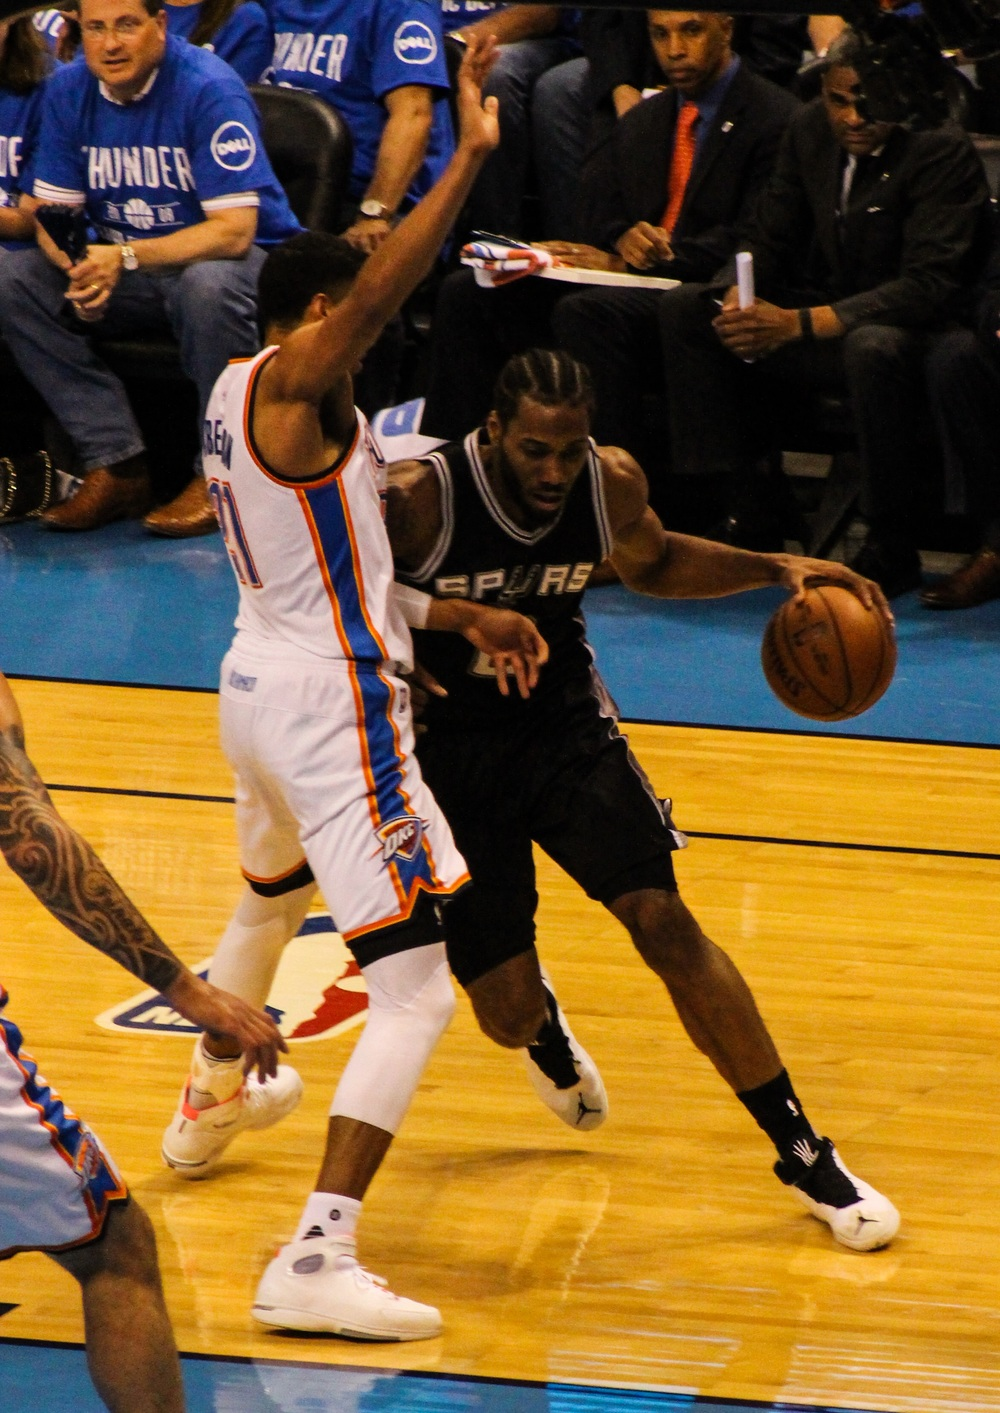 Thunder guard Andre Roberson defends against Spurs star Kawhi Leonard in Game 6 of the Western Conference Semi-Finals. (Photo By Sam Murch/InsideThunder.com)